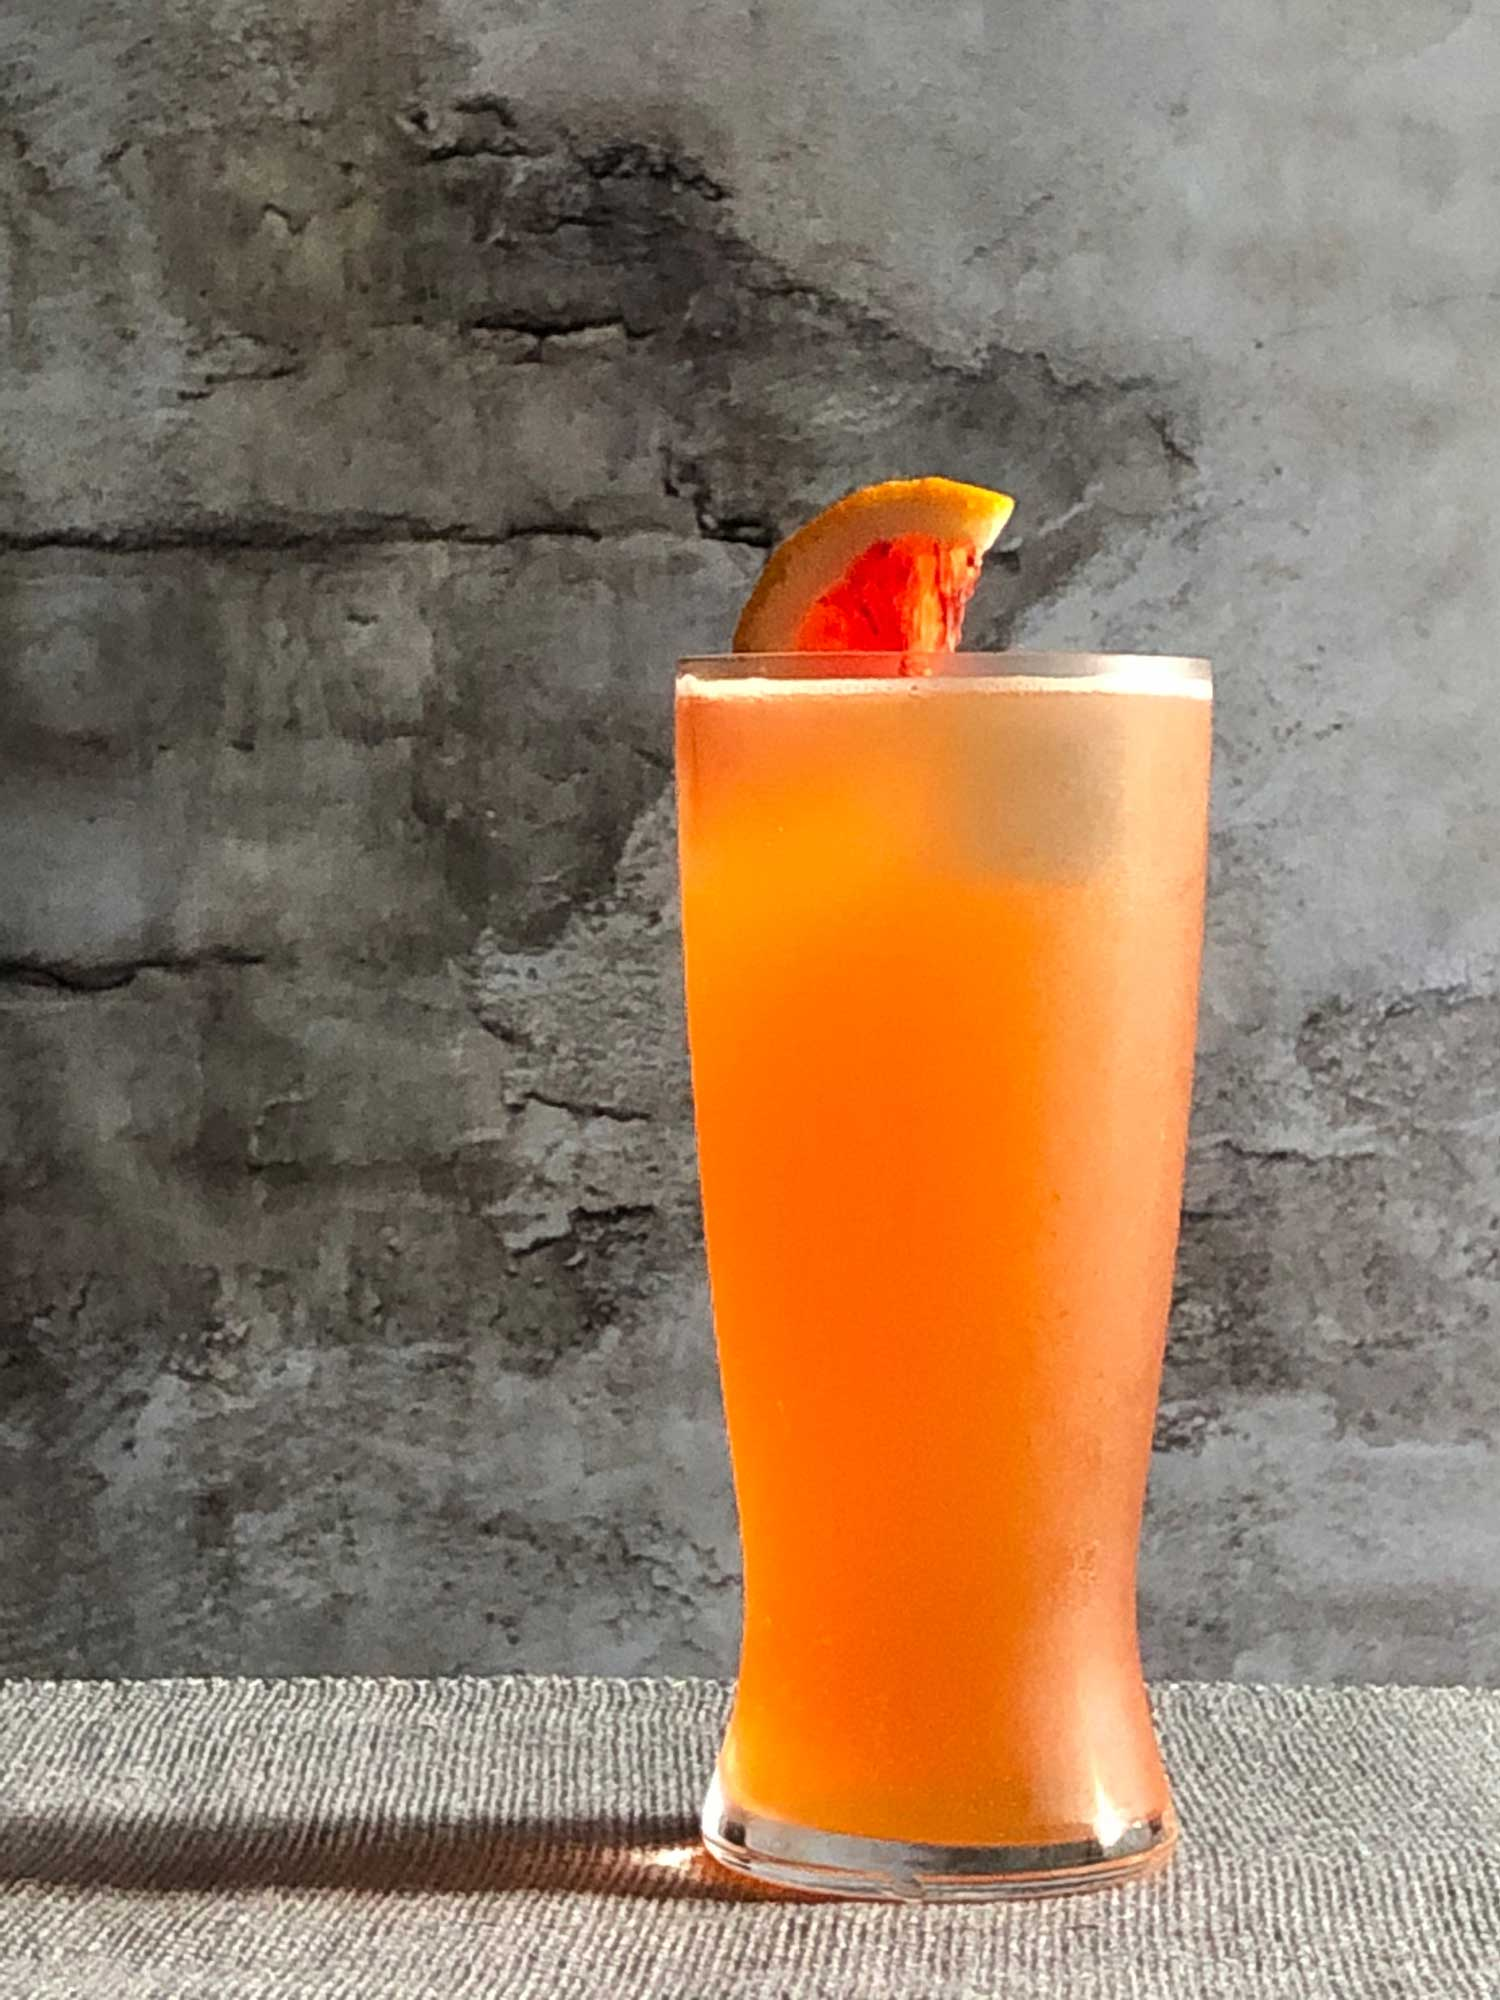 An example of the The Roadie, the mixed drink (cocktail), by Booth Hardy, Barrel Thief Wine Shop & Café, Richmond, VA. In honor of the 2015 World Road Cycling Championships, featuring Stiegl Grapefruit Radler, and Aperitivo Cappelletti; photo by Lee Edwards